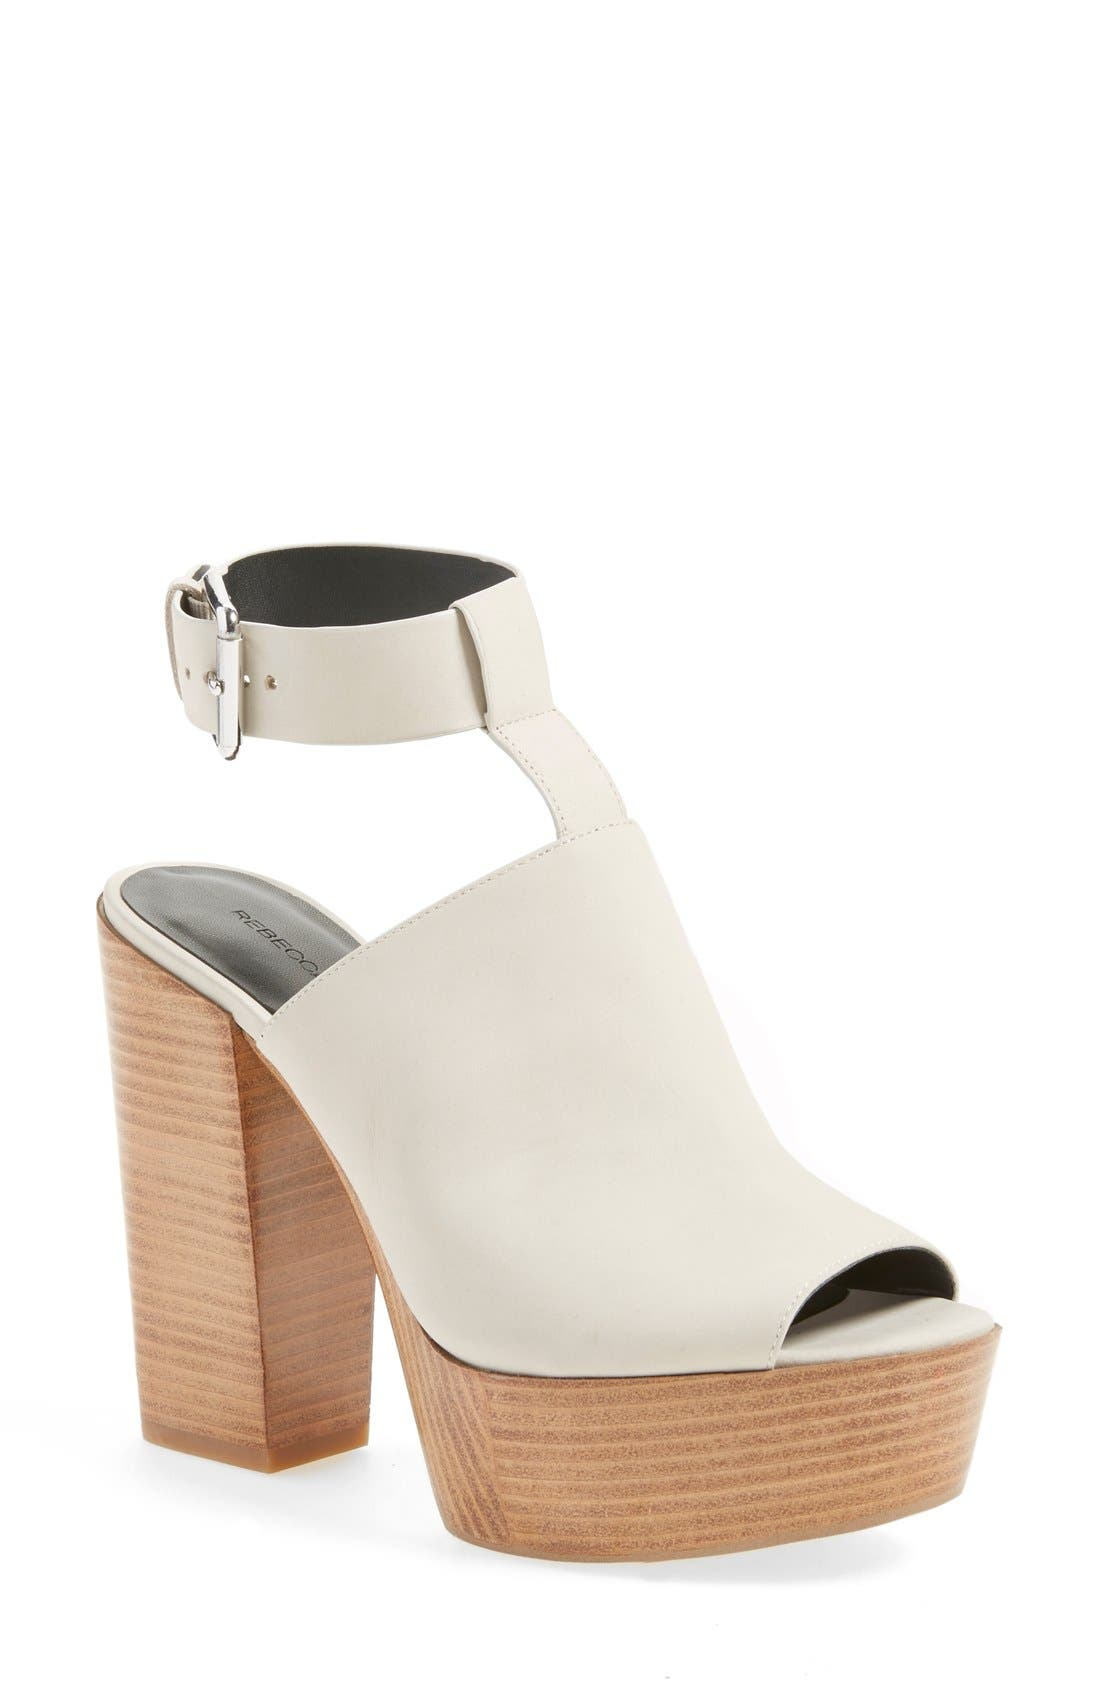 Alternate Image 1 Selected - Rebecca Minkoff 'Cece' Platform Sandal (Women)